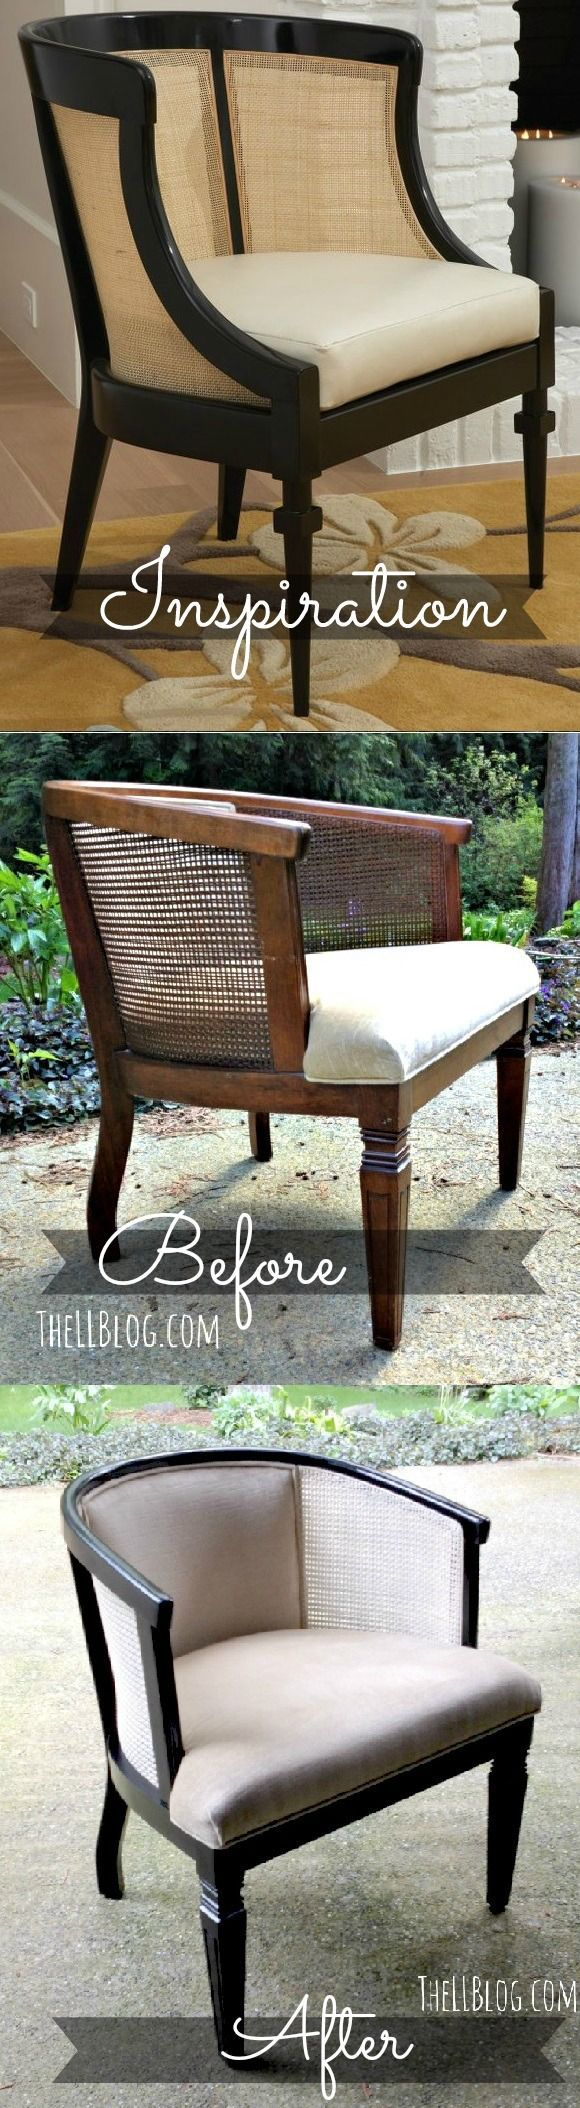 25 Best Ideas About Reupholster Furniture On Pinterest